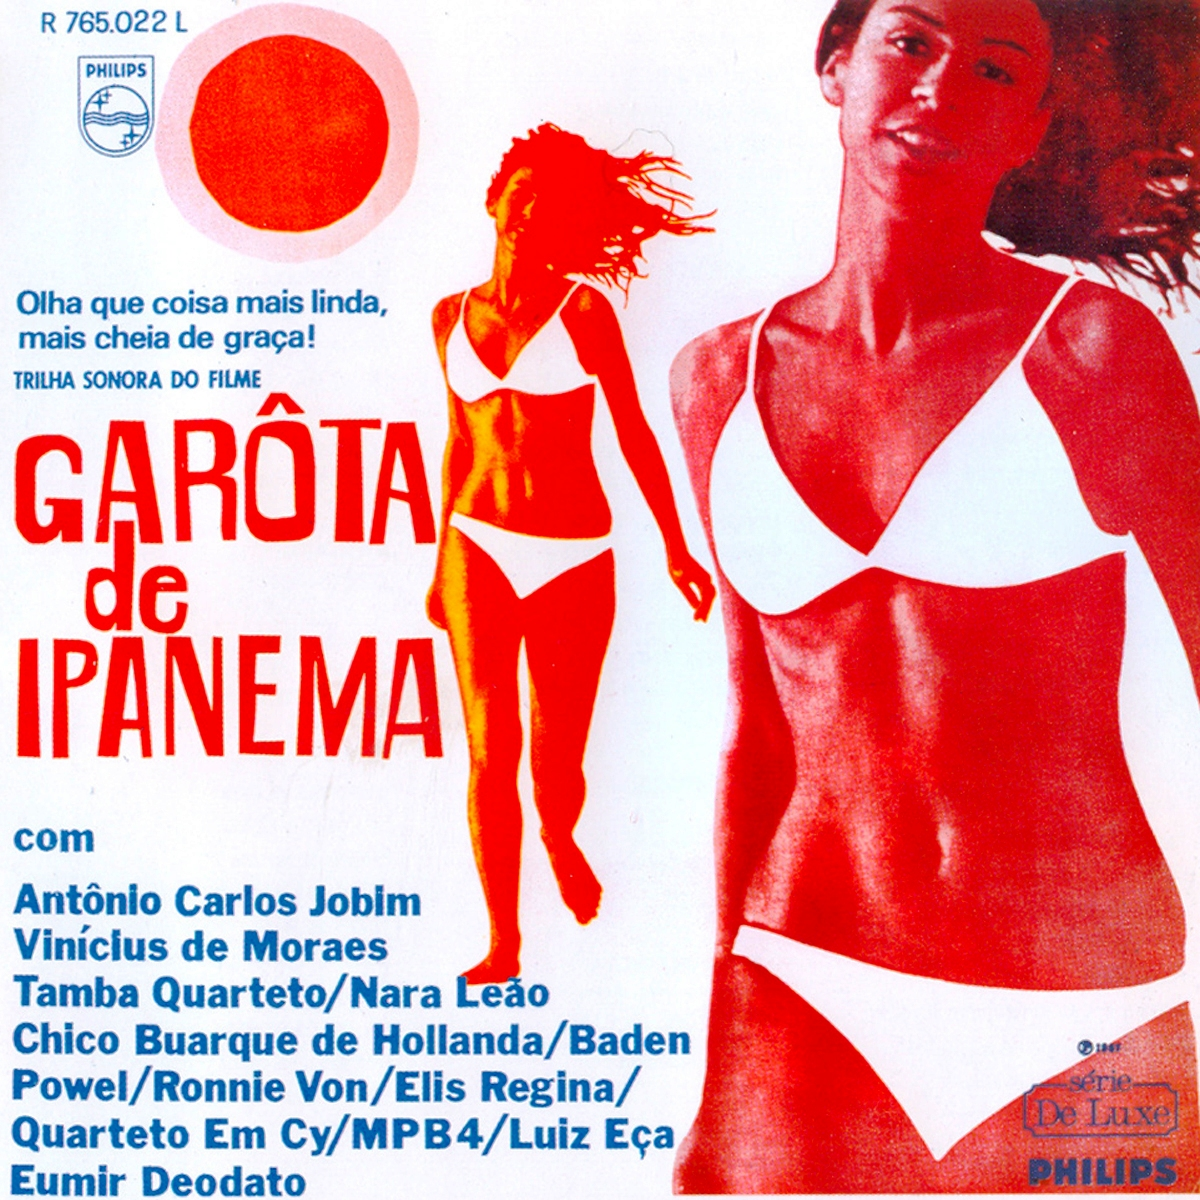 Garota_de_ipanema - The Girl from Ipanema